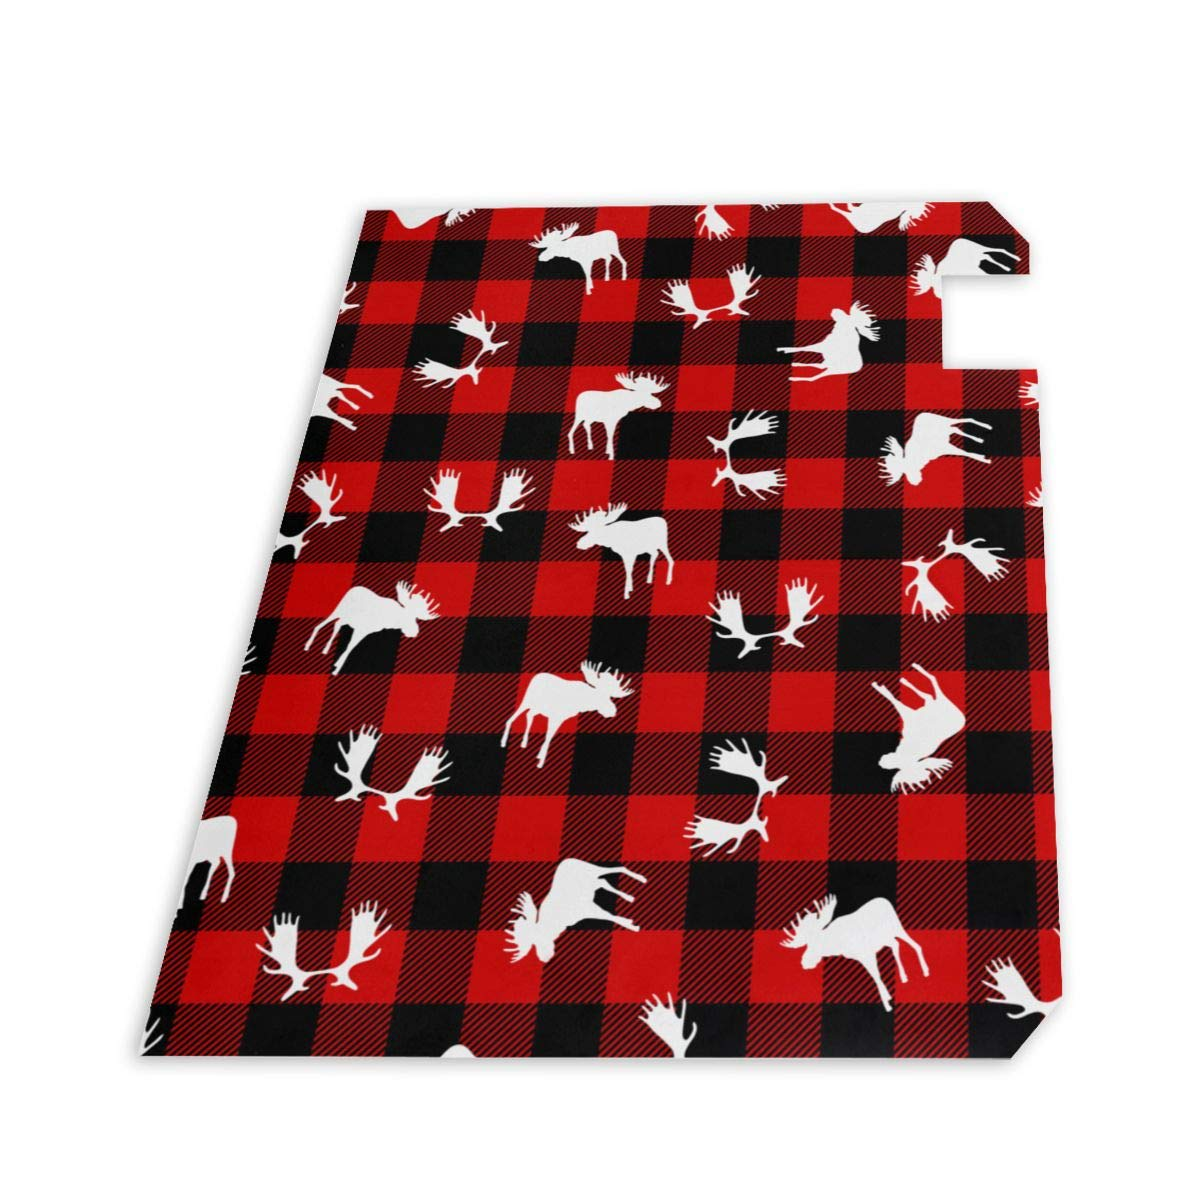 PBZNAN Lumberjack Plaid Moose Mailbox Covers Magnetic Mail Post Cover Mailbox Wraps 21x18 in